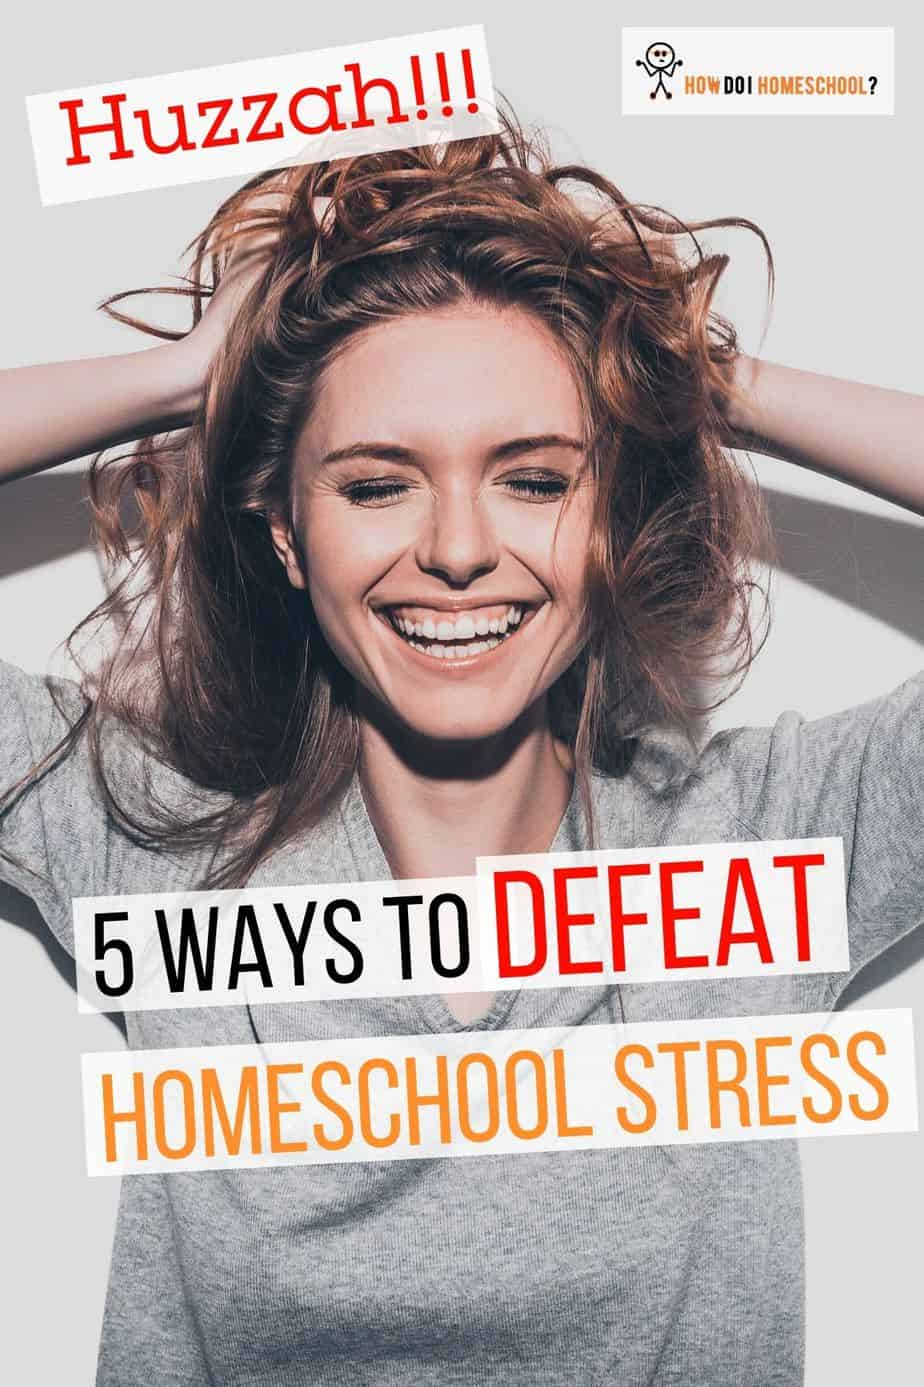 Say farewell to stress in your homeschool with these 5 ways you can extinguish stressful situations. #homeschoollife #homeschoolcurriculum